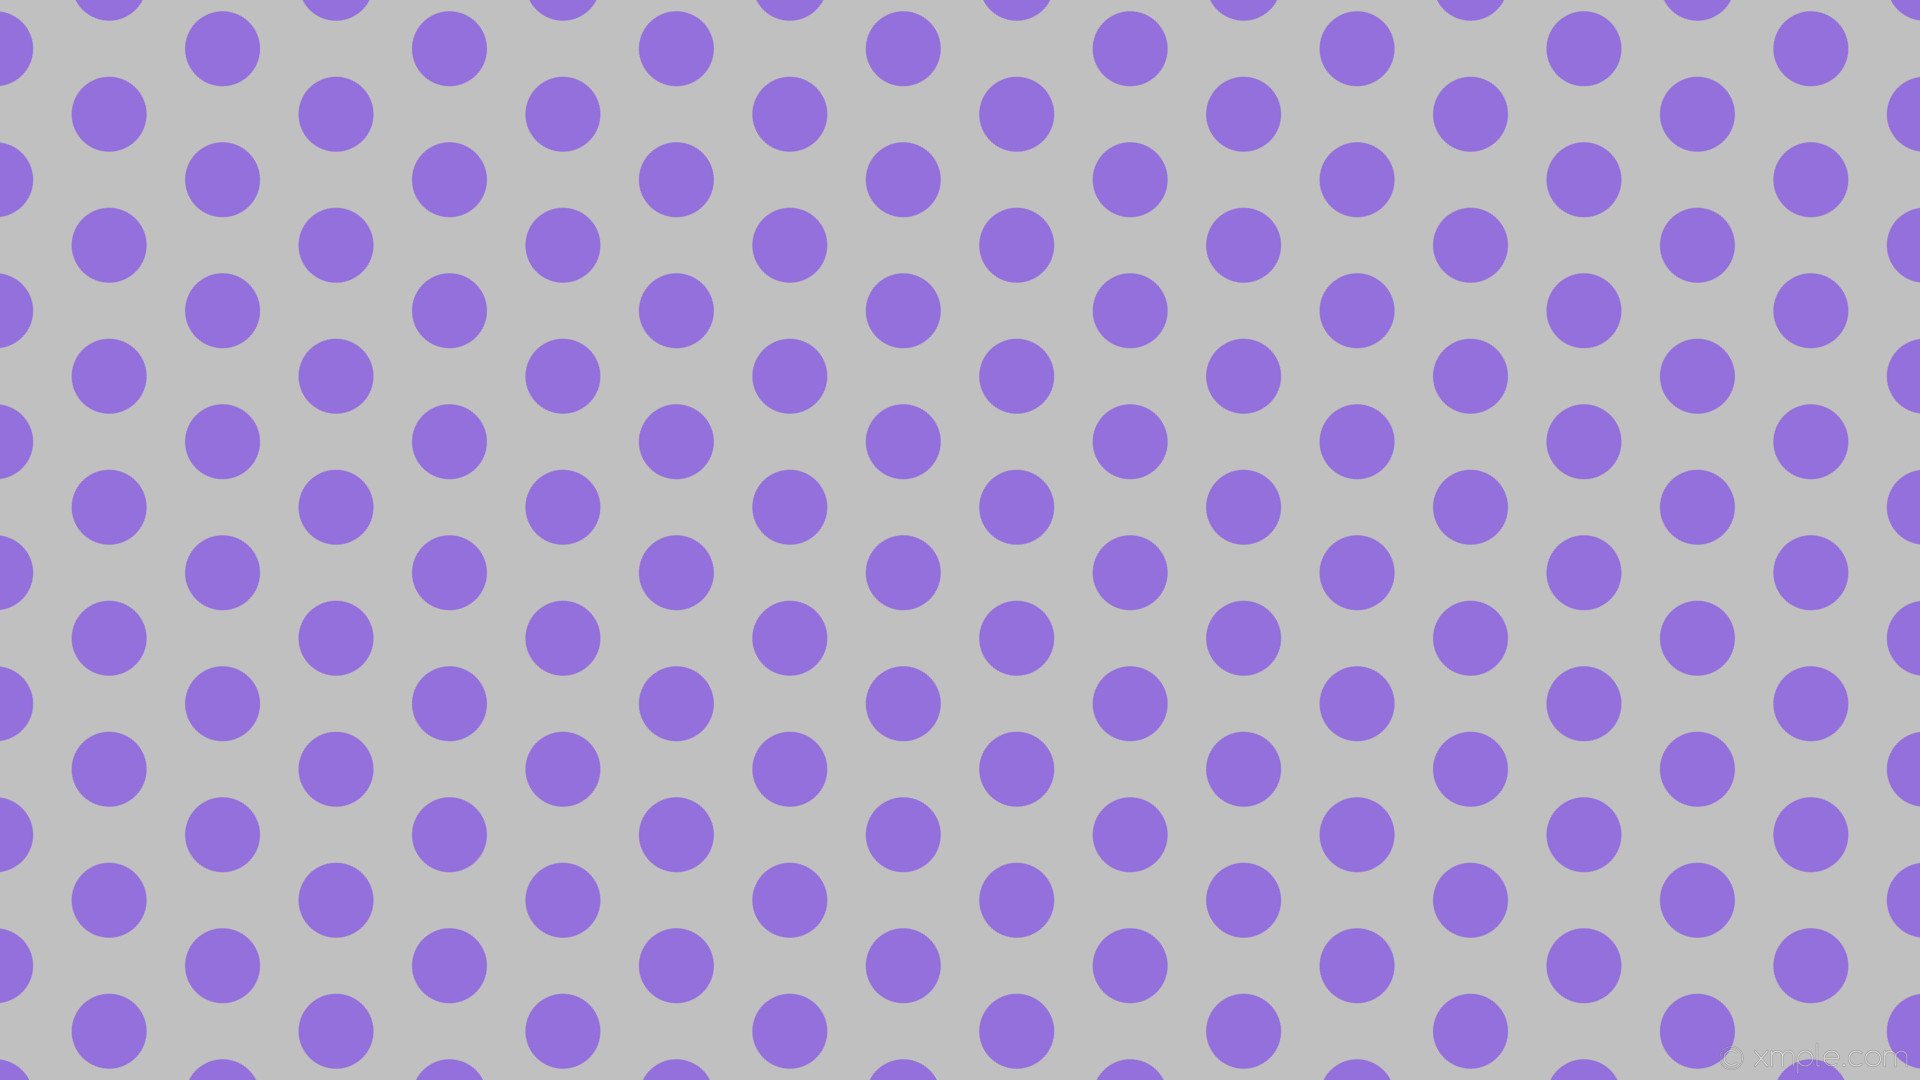 1920x1080 wallpaper polka purple hexagon grey dots silver medium purple #c0c0c0  #9370db diagonal 30°